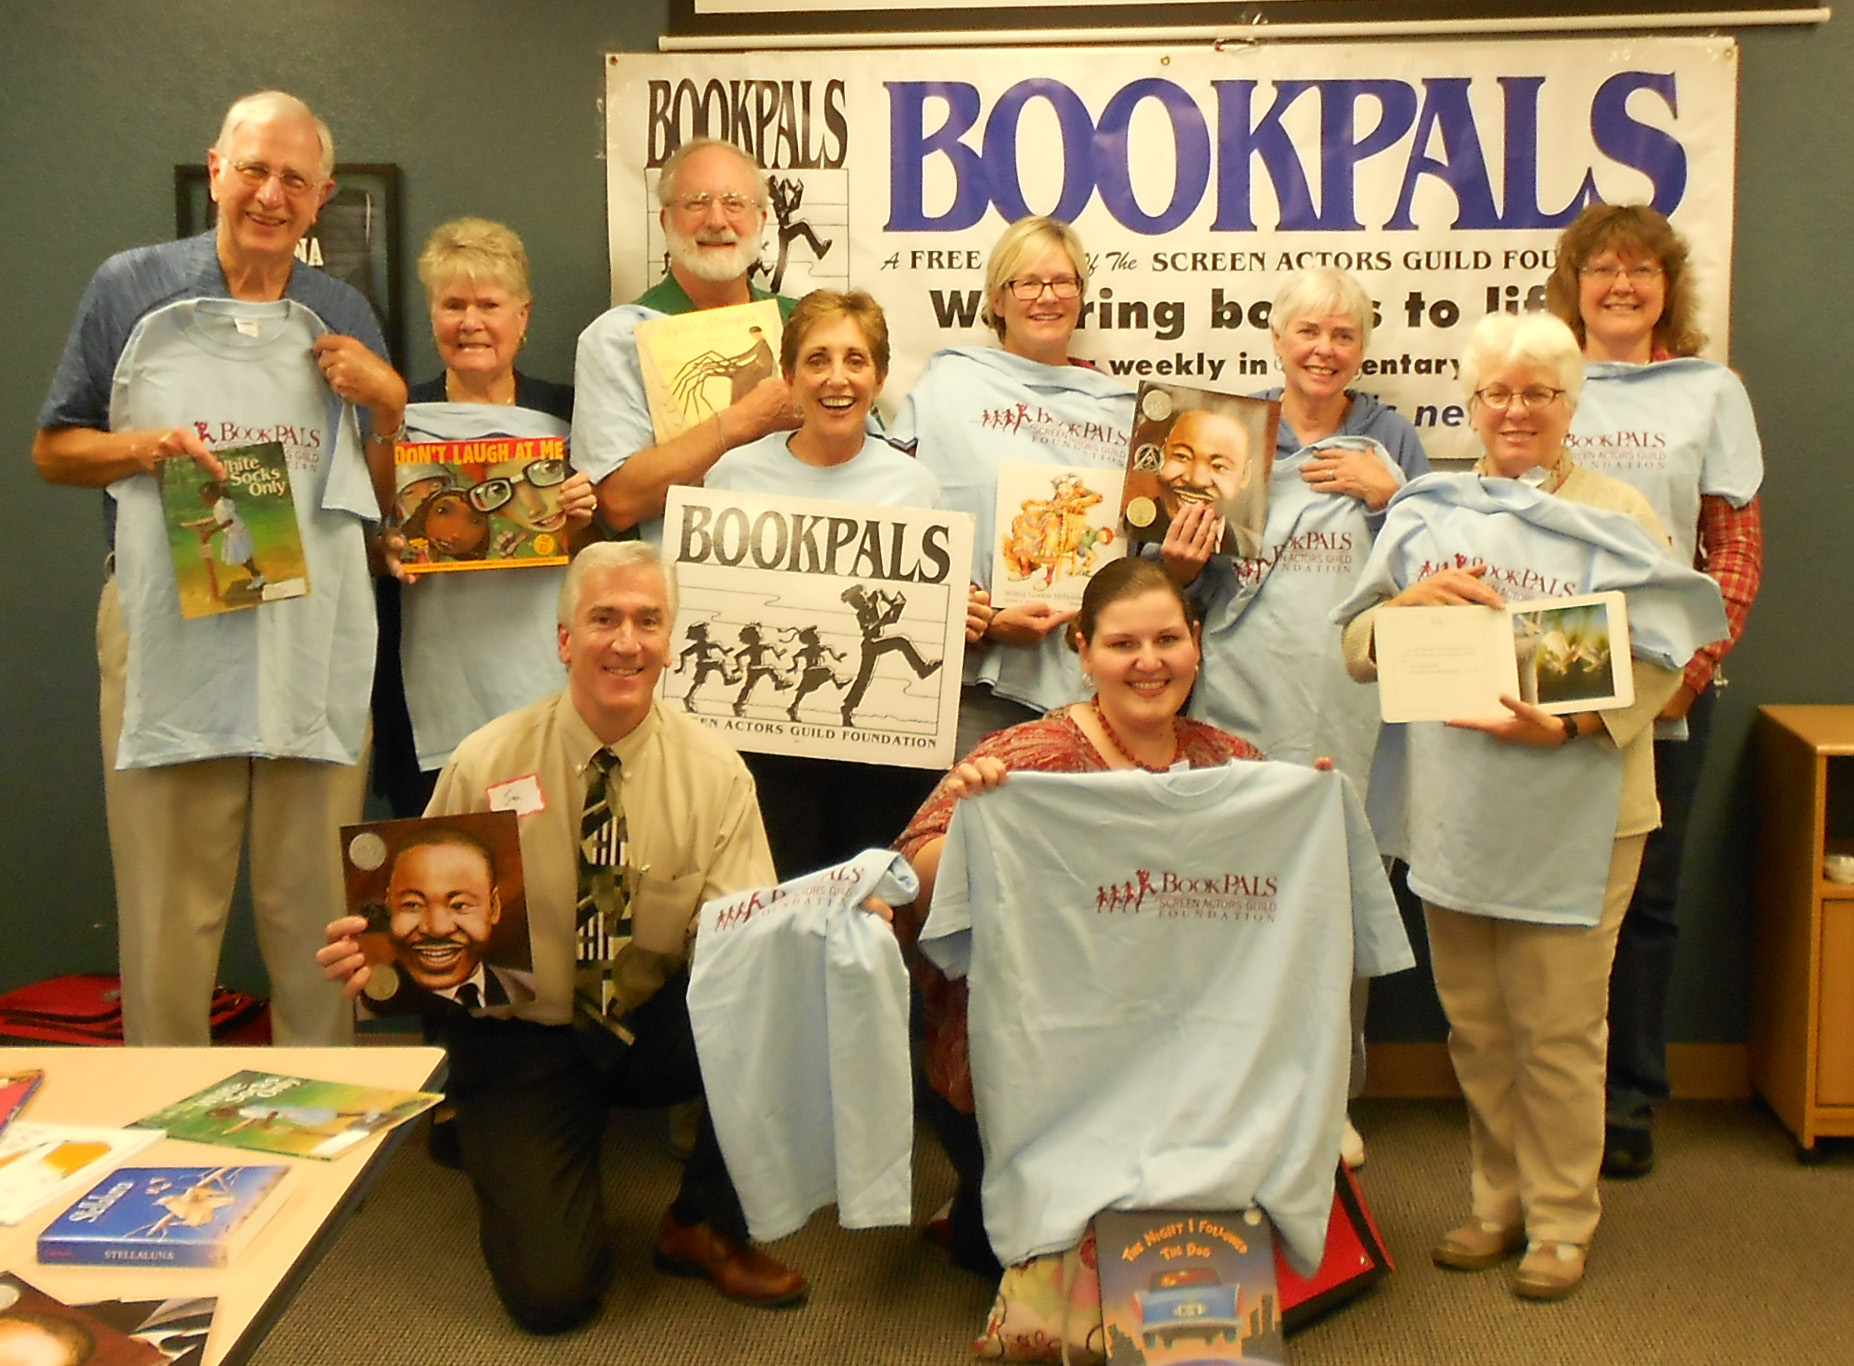 Some of the Flagstaff BookPALS trained in October.